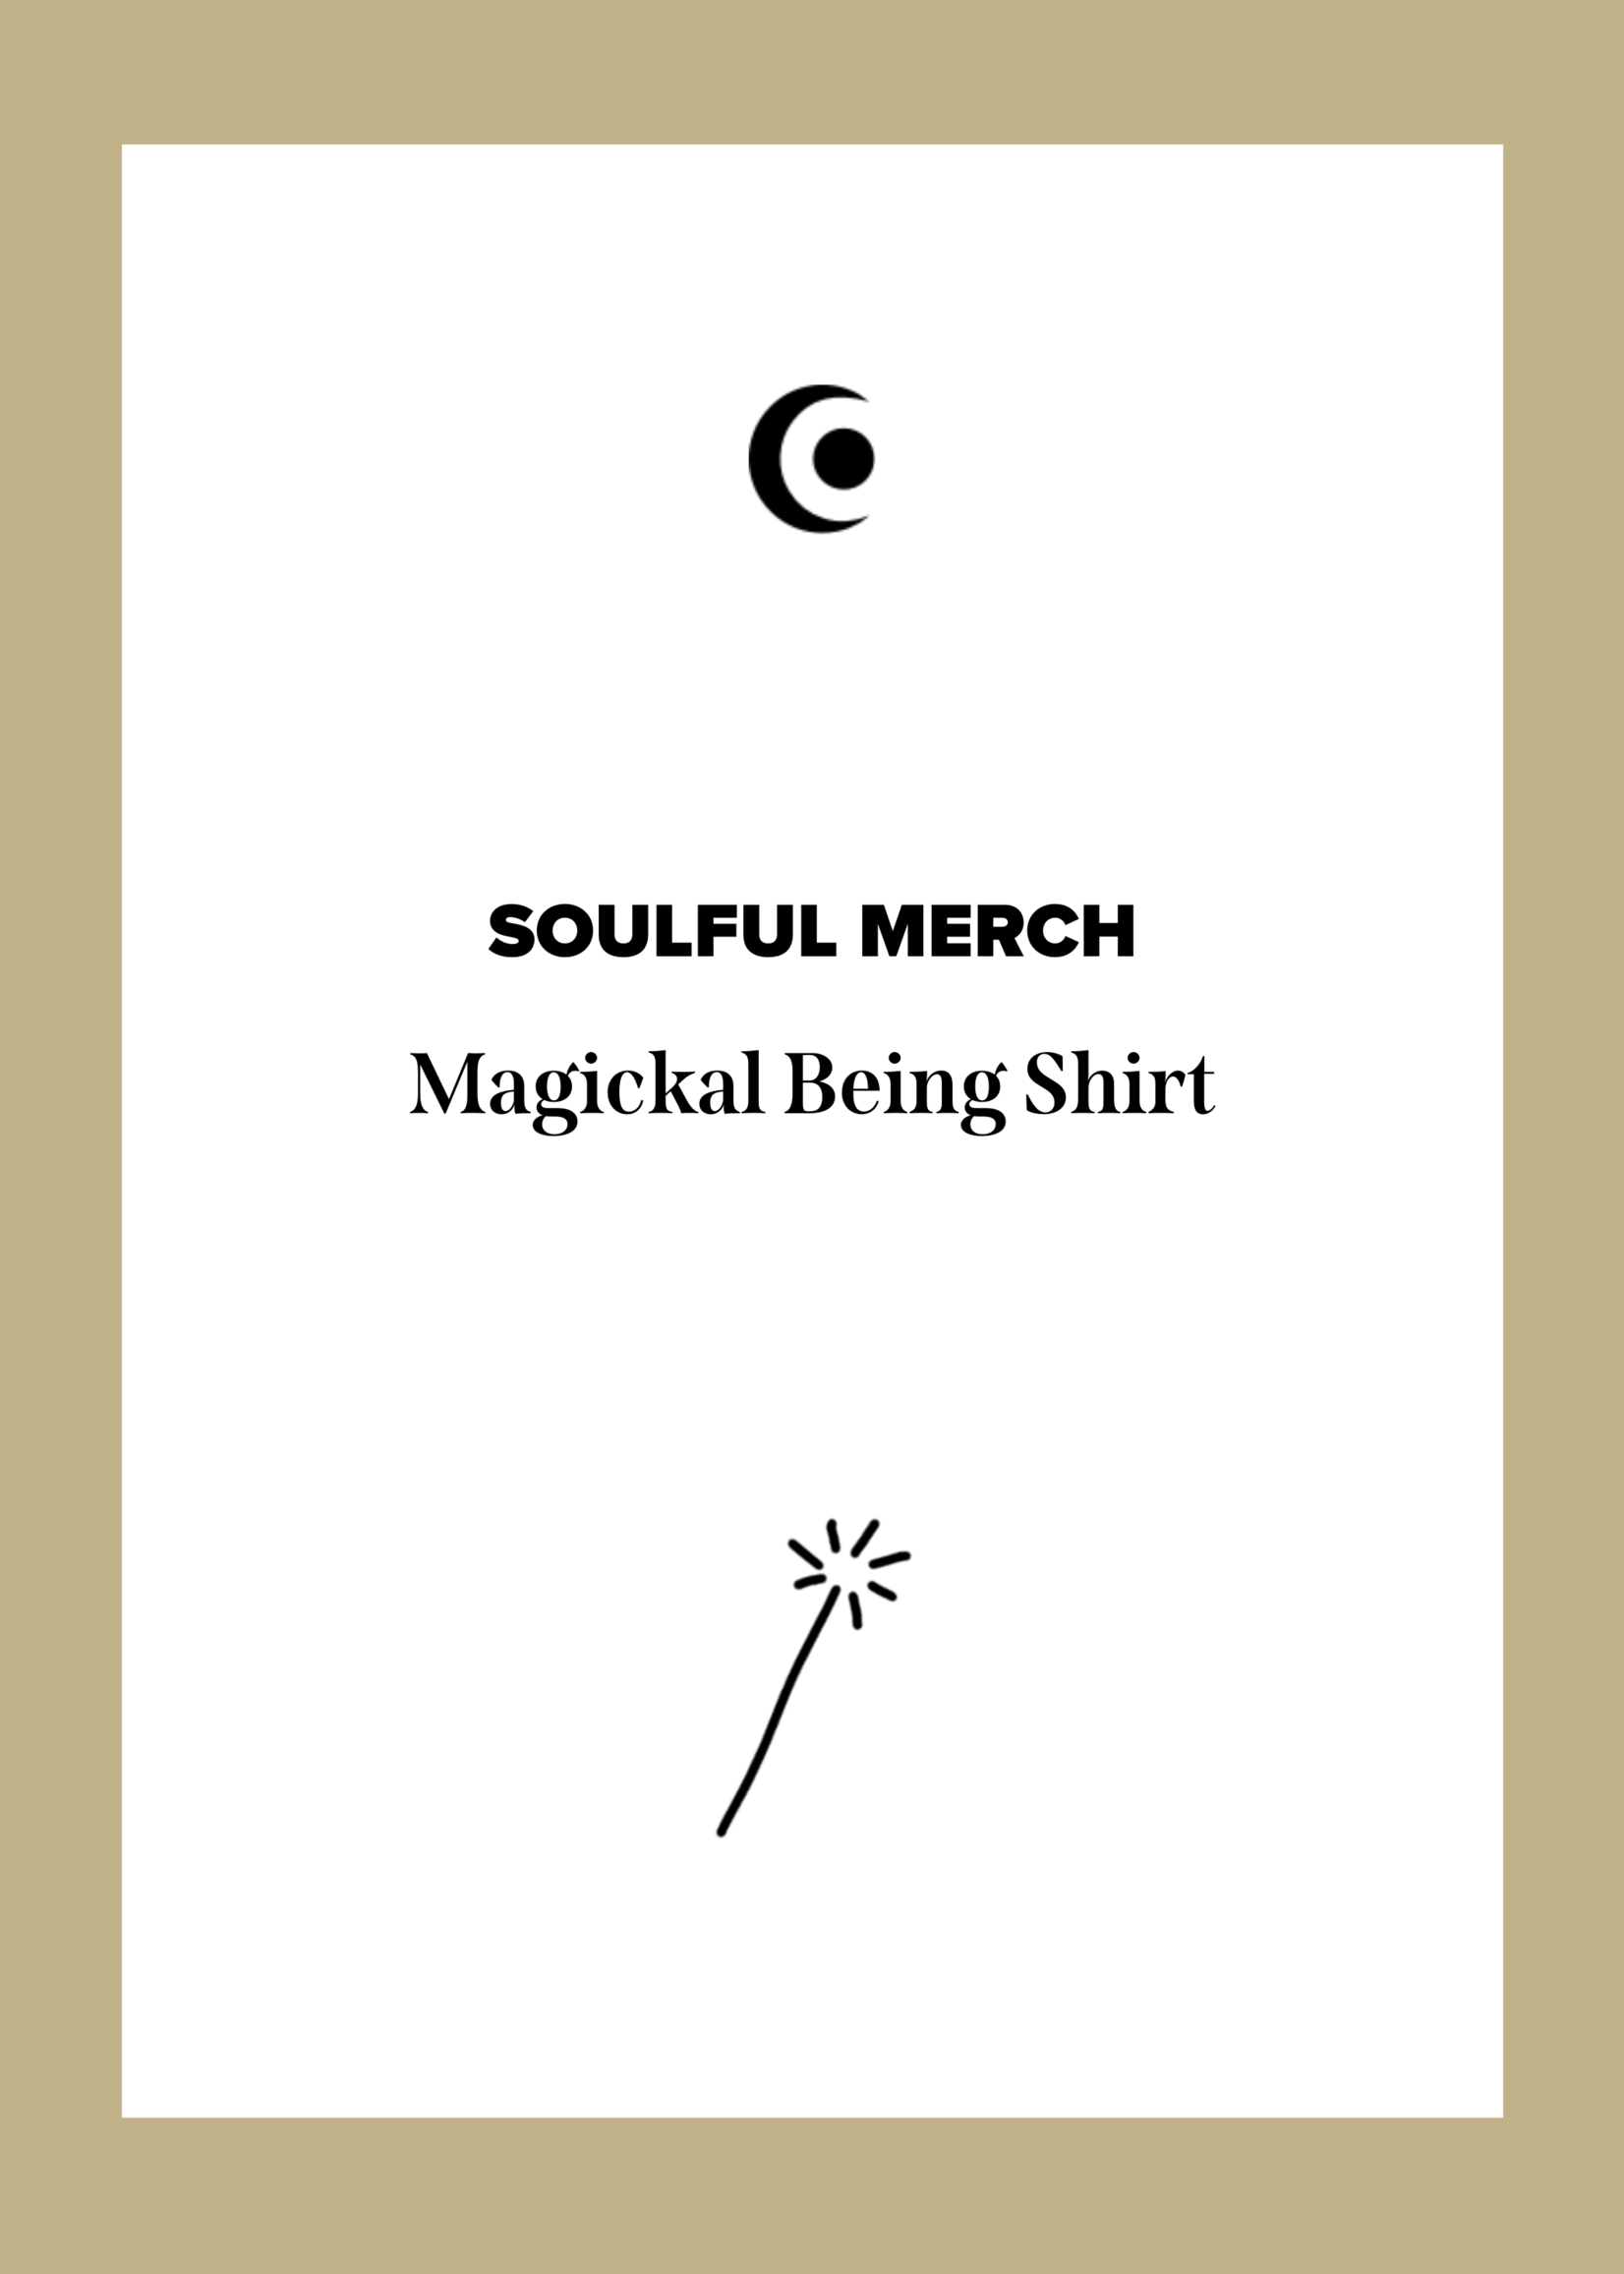 MAGICKAL BEING Shirt in white on black